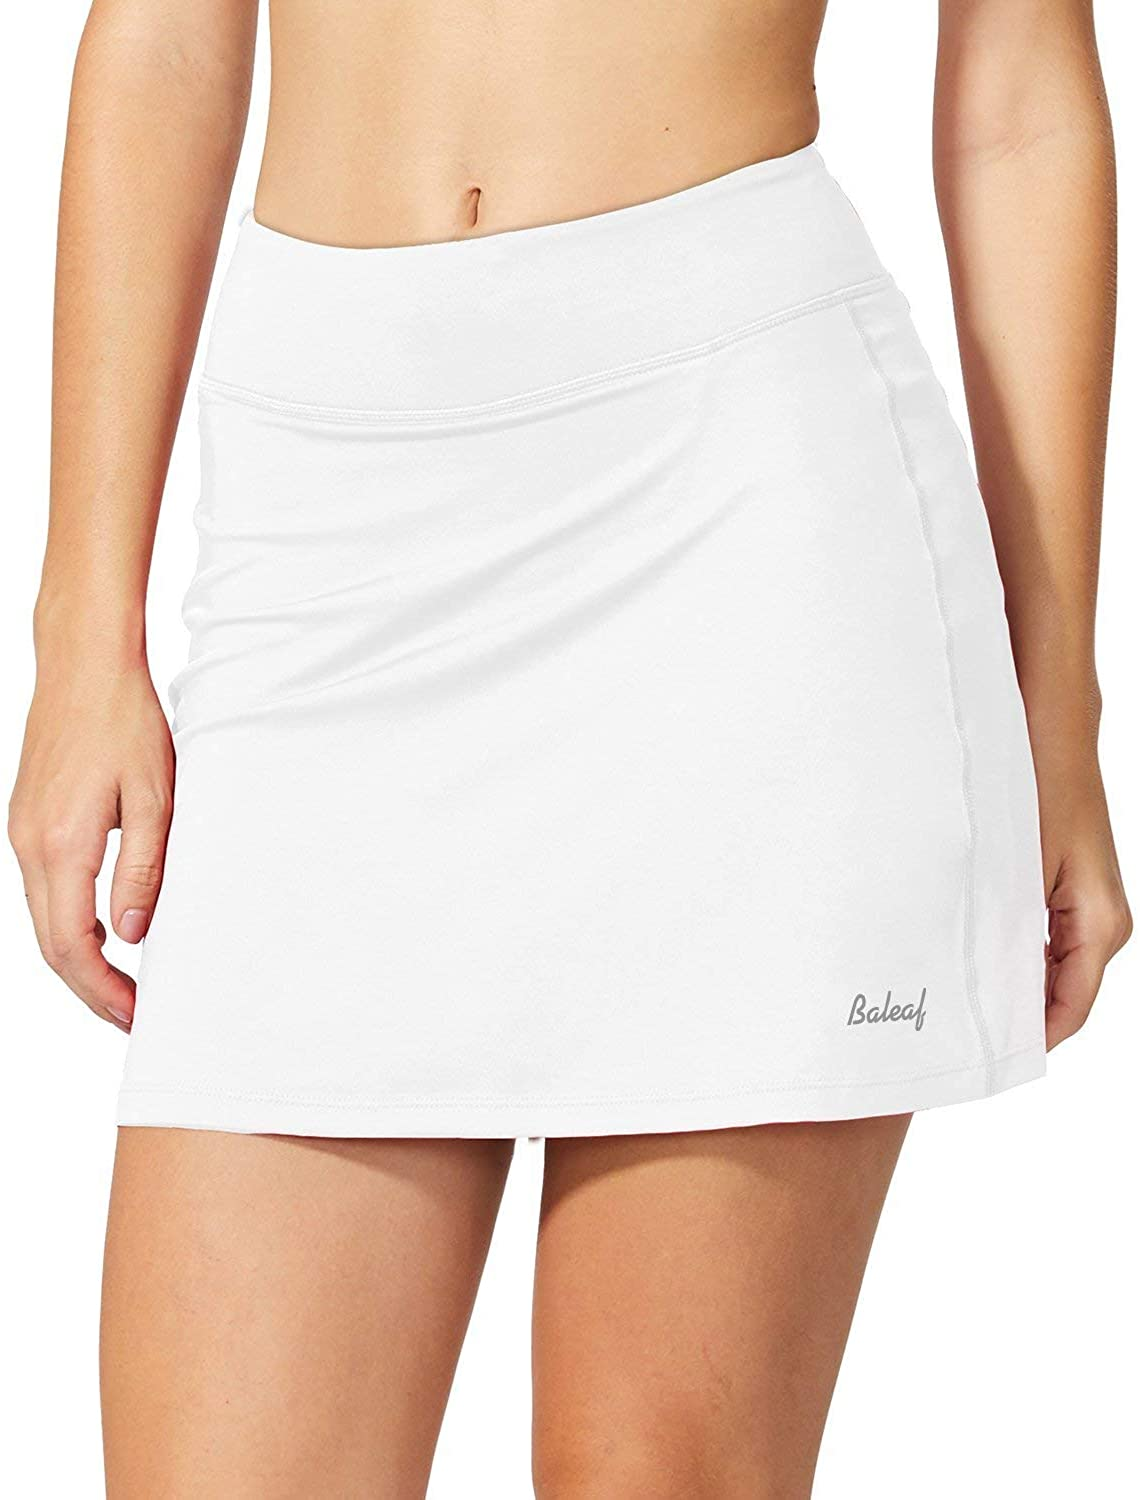 BALEAF Women's Active Athletic Skort Lightweight Skirt with Pockets Inner Shorts Perfect for Running Golf Tennis Casual Use